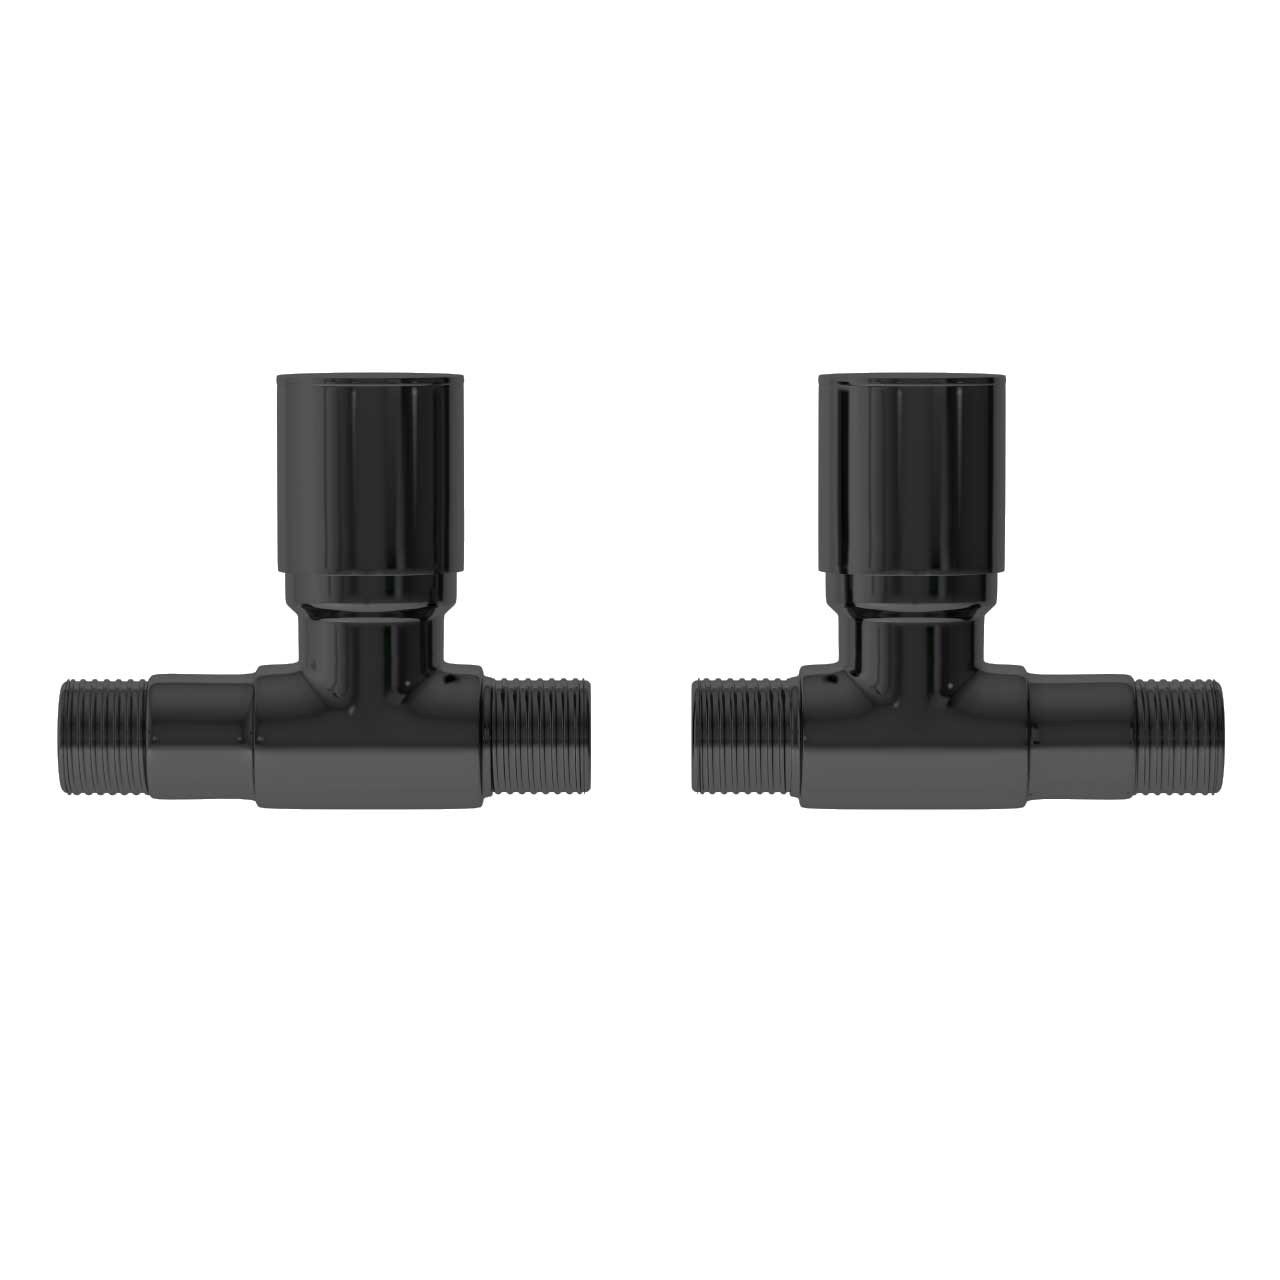 Black Nickel Round Straight Radiator Valves